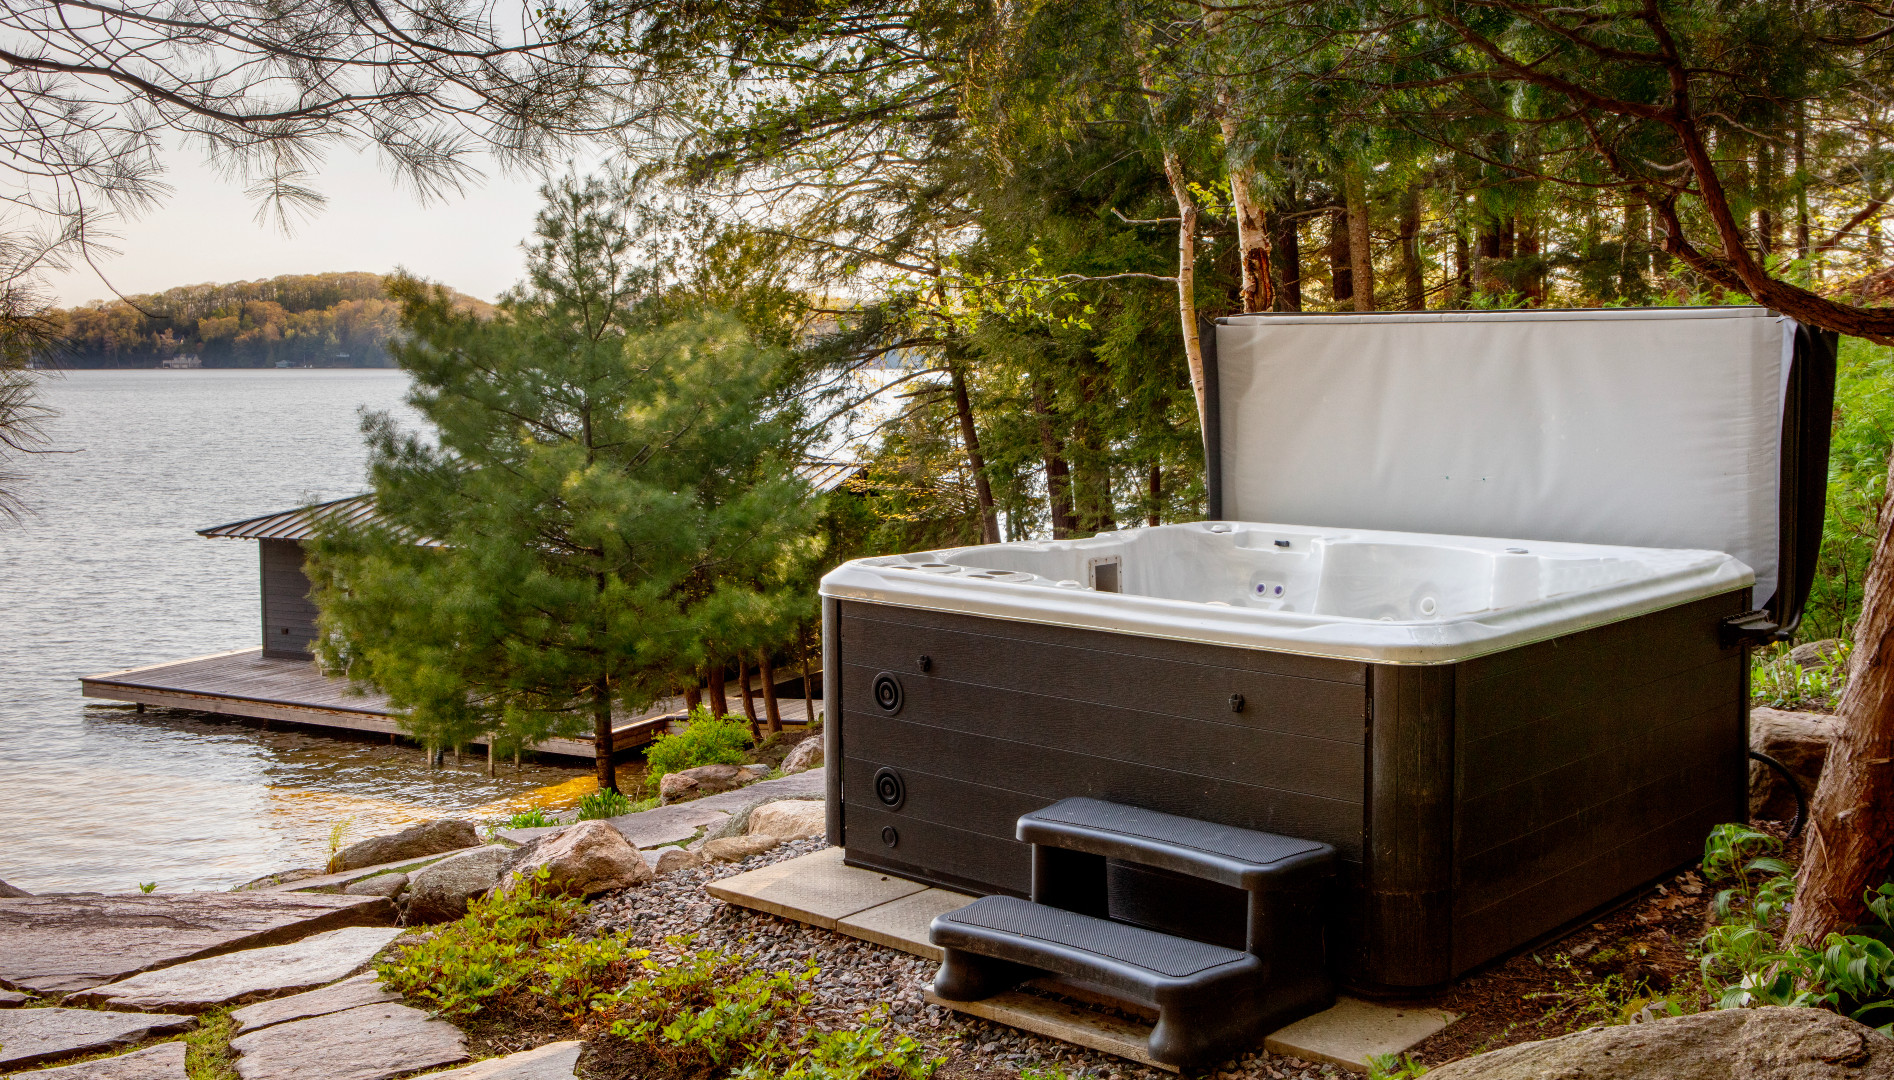 A photo of the outdoor hot tub.